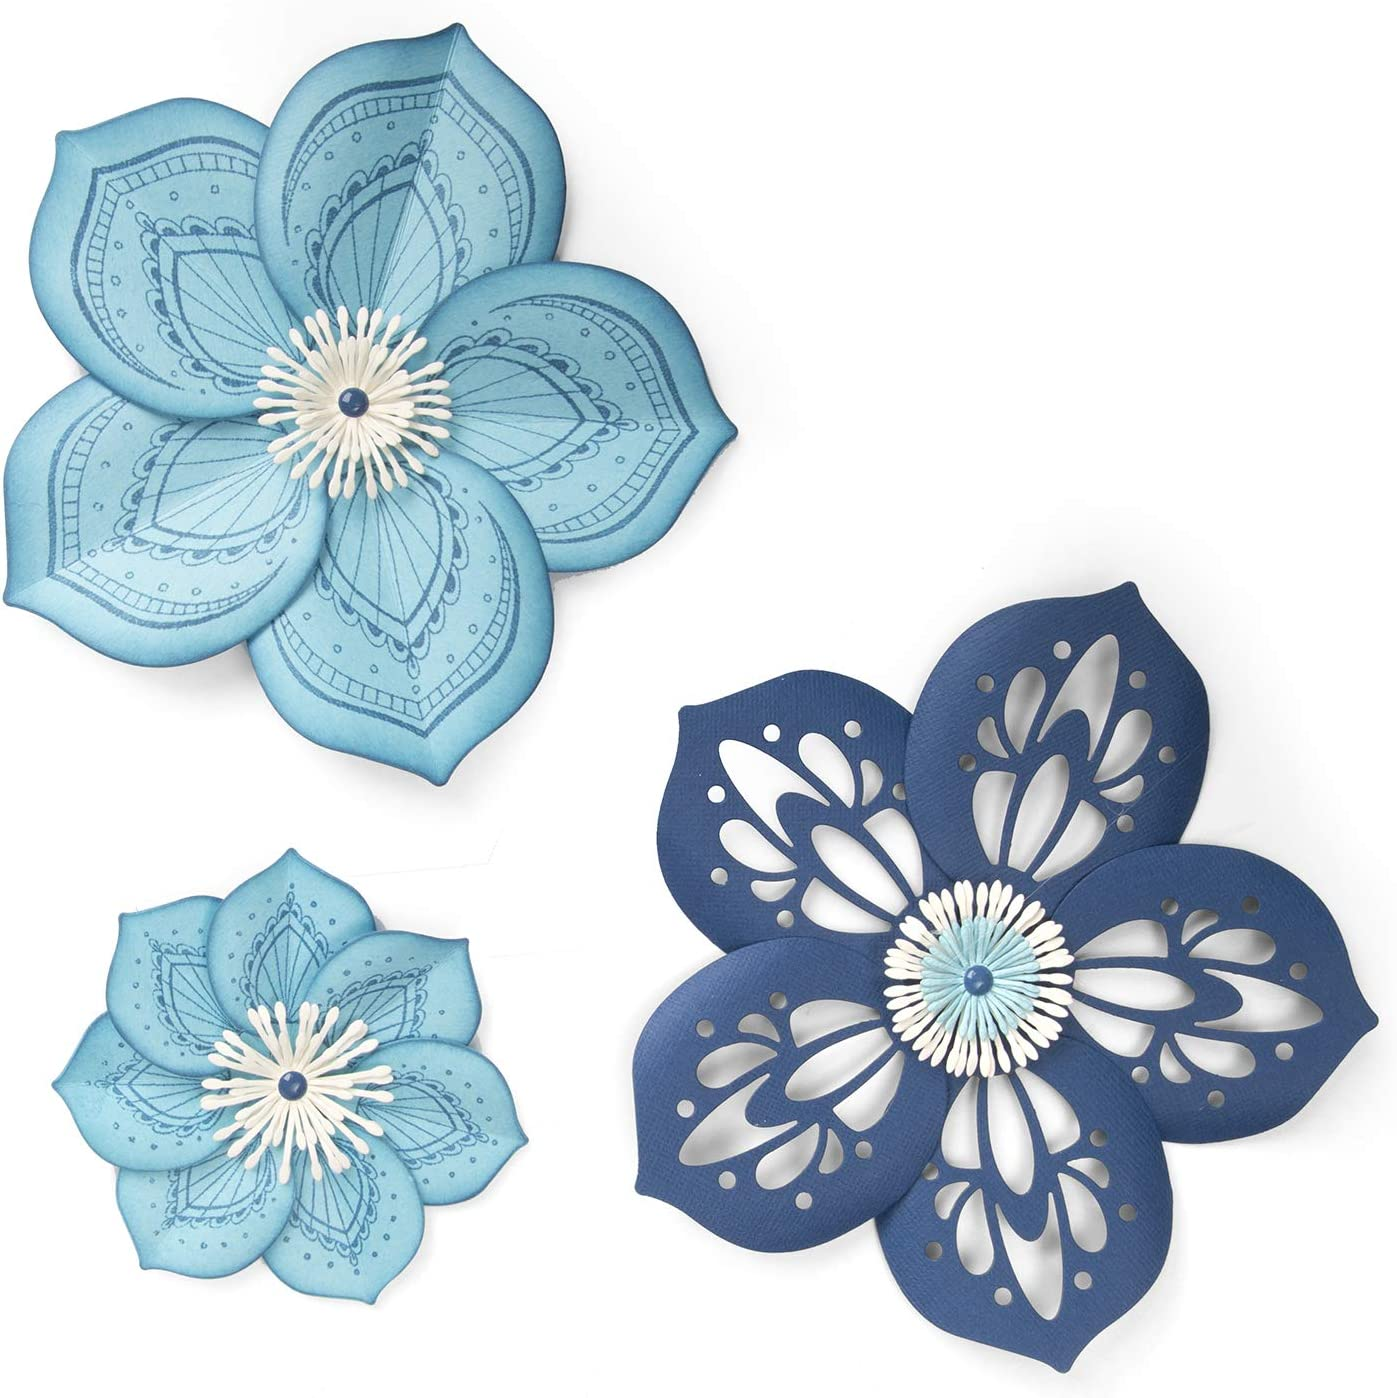 Sizzix Framelits Die Set with Stamps, Rosette Flower by David Tutera (5-Pack), Multicolor